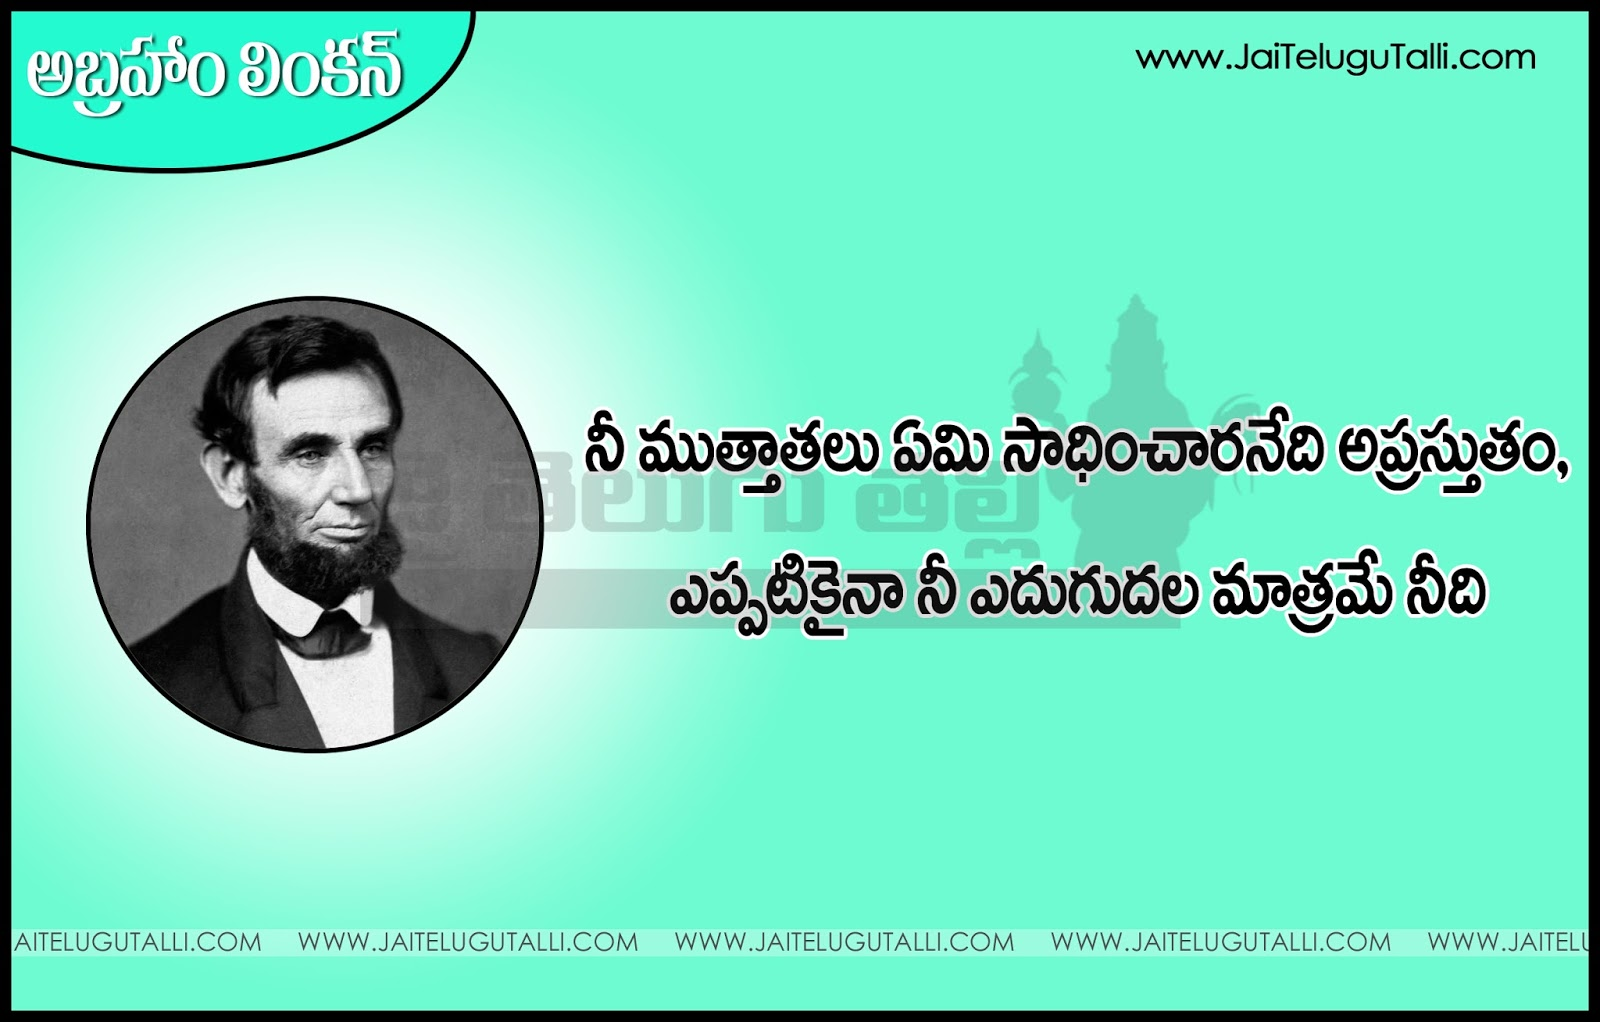 Abraham Lincoln Quotes On Life Telugu Quotations And Nice Feelingsabraham Lincoln  Www